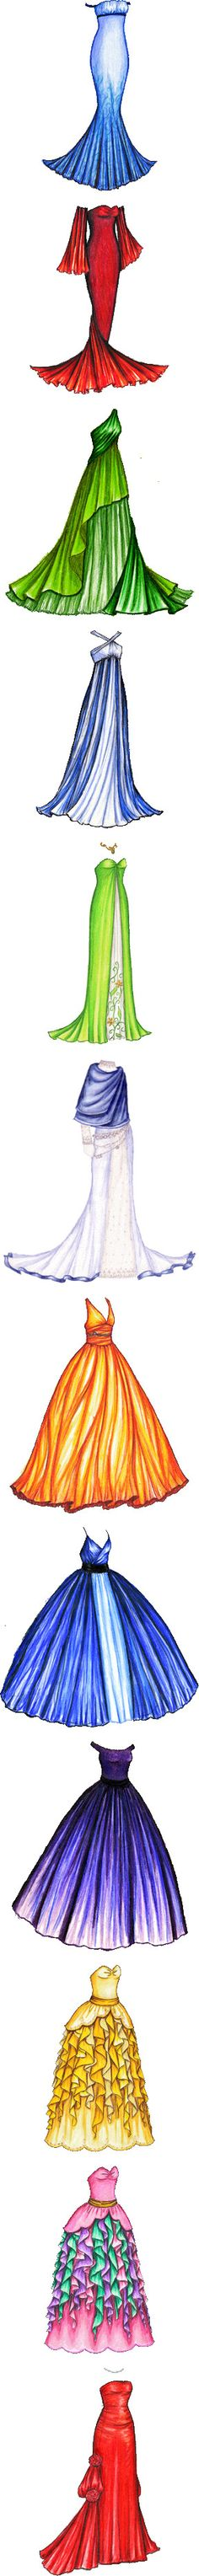 Liana Kerr's absolut awesome Paper Doll dresses I by sunrise21 on Polyvore featuring dresses, paper doll, backgrounds, gowns, vestidos, paper dolls, drawings, paperdolls, dolls and paper doll dresses